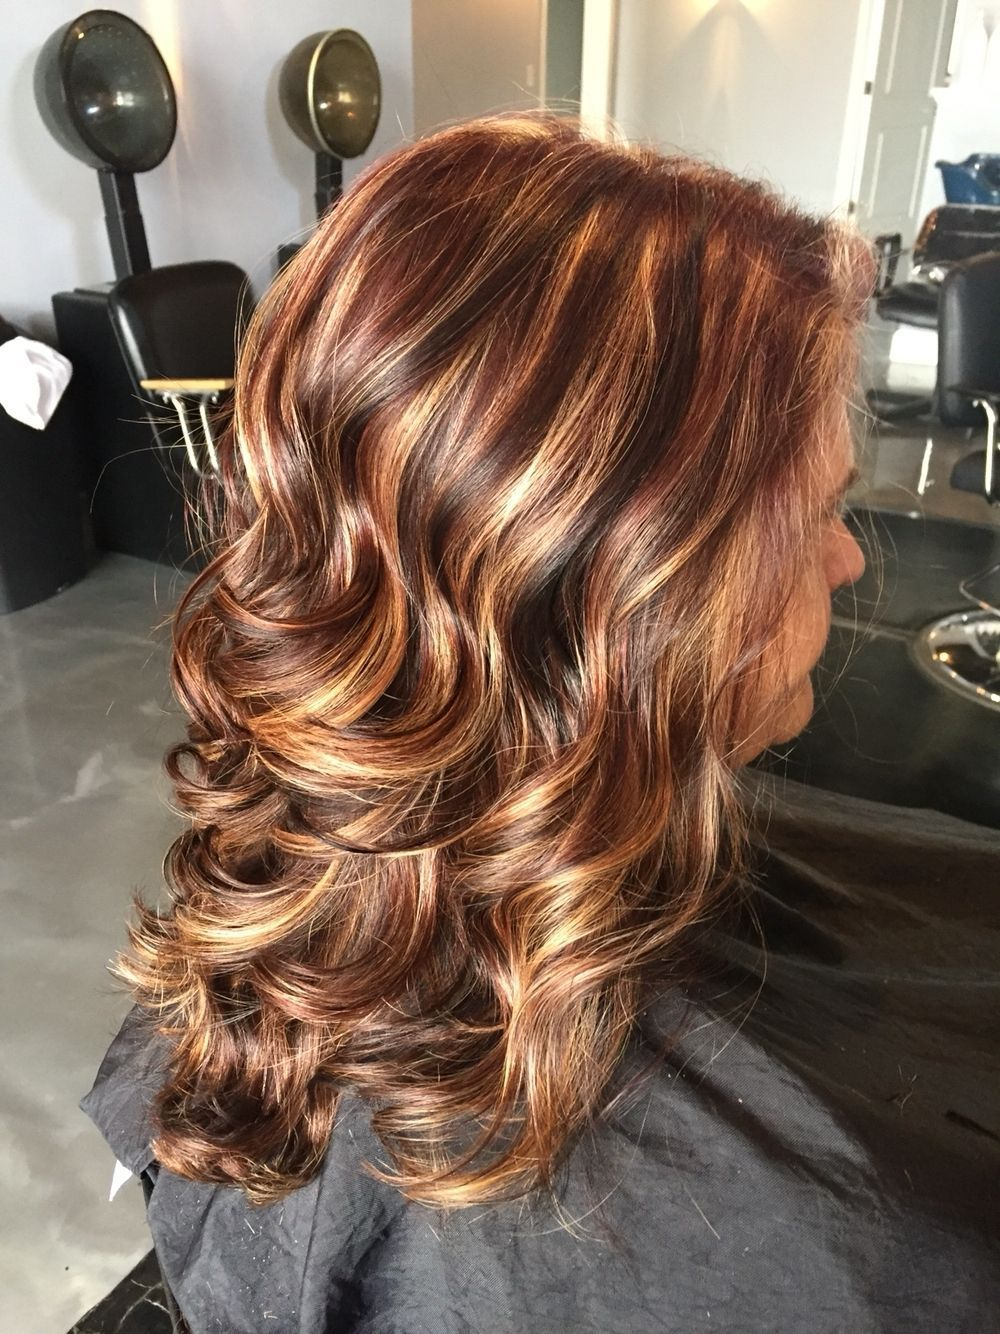 Marvelous Strawberry Blonde Hair With Hair Highlights And